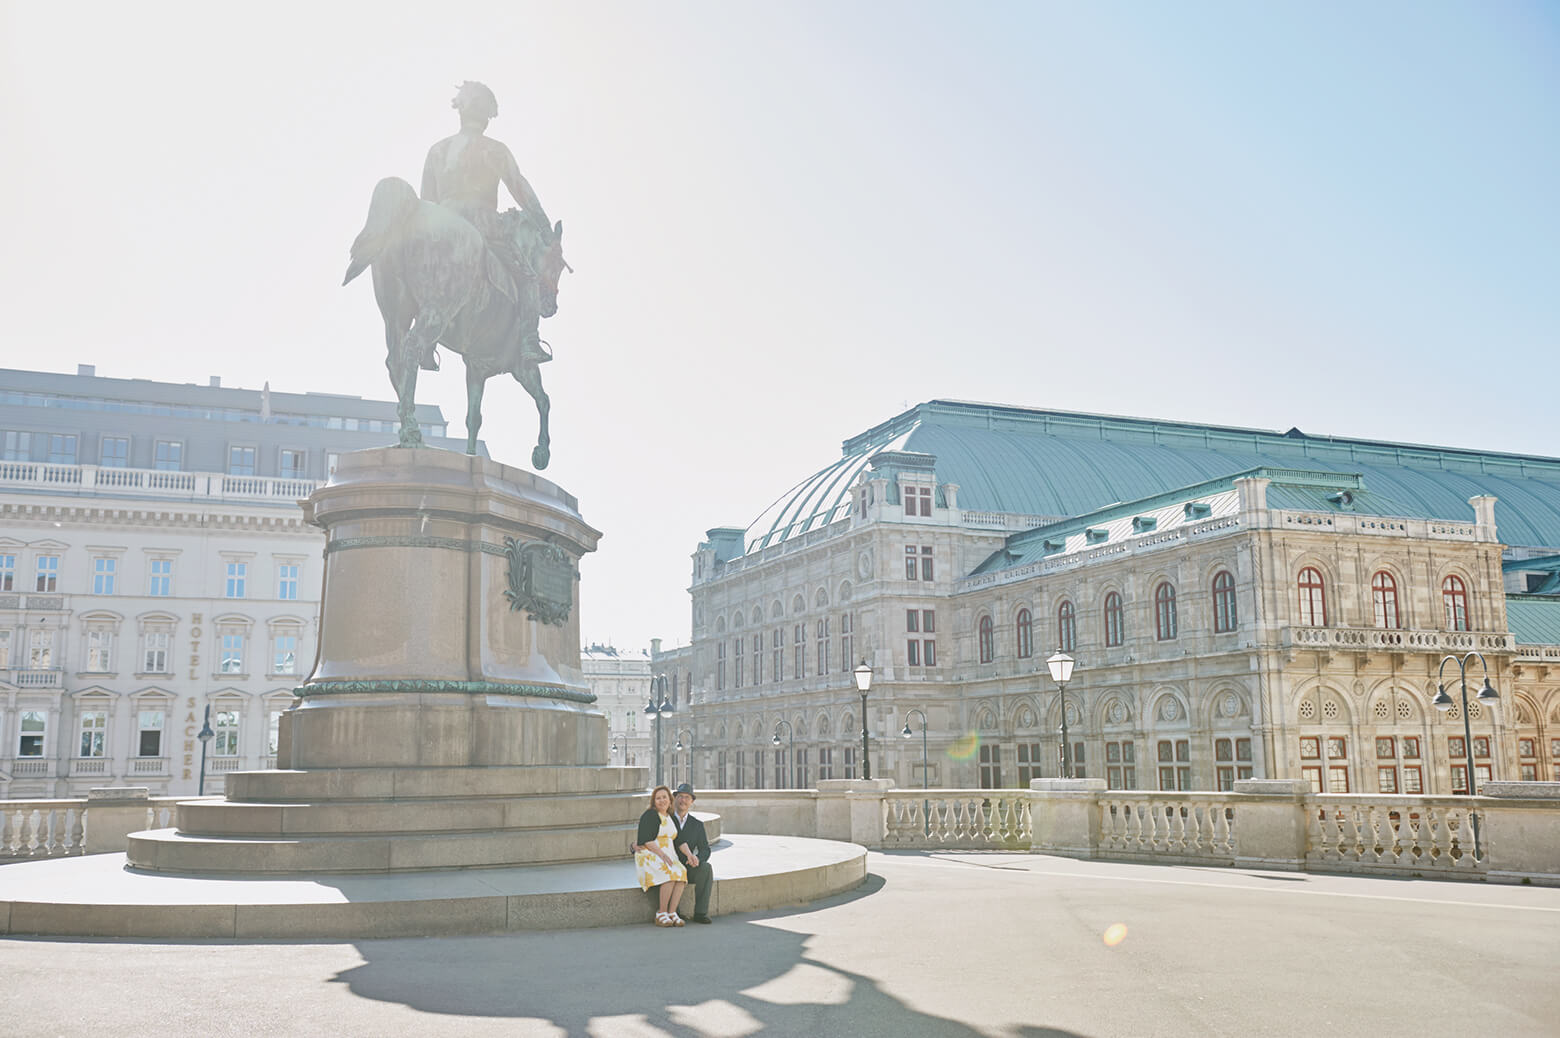 Destination portrait photography in Vienna, Austria by Ursula Schmitz